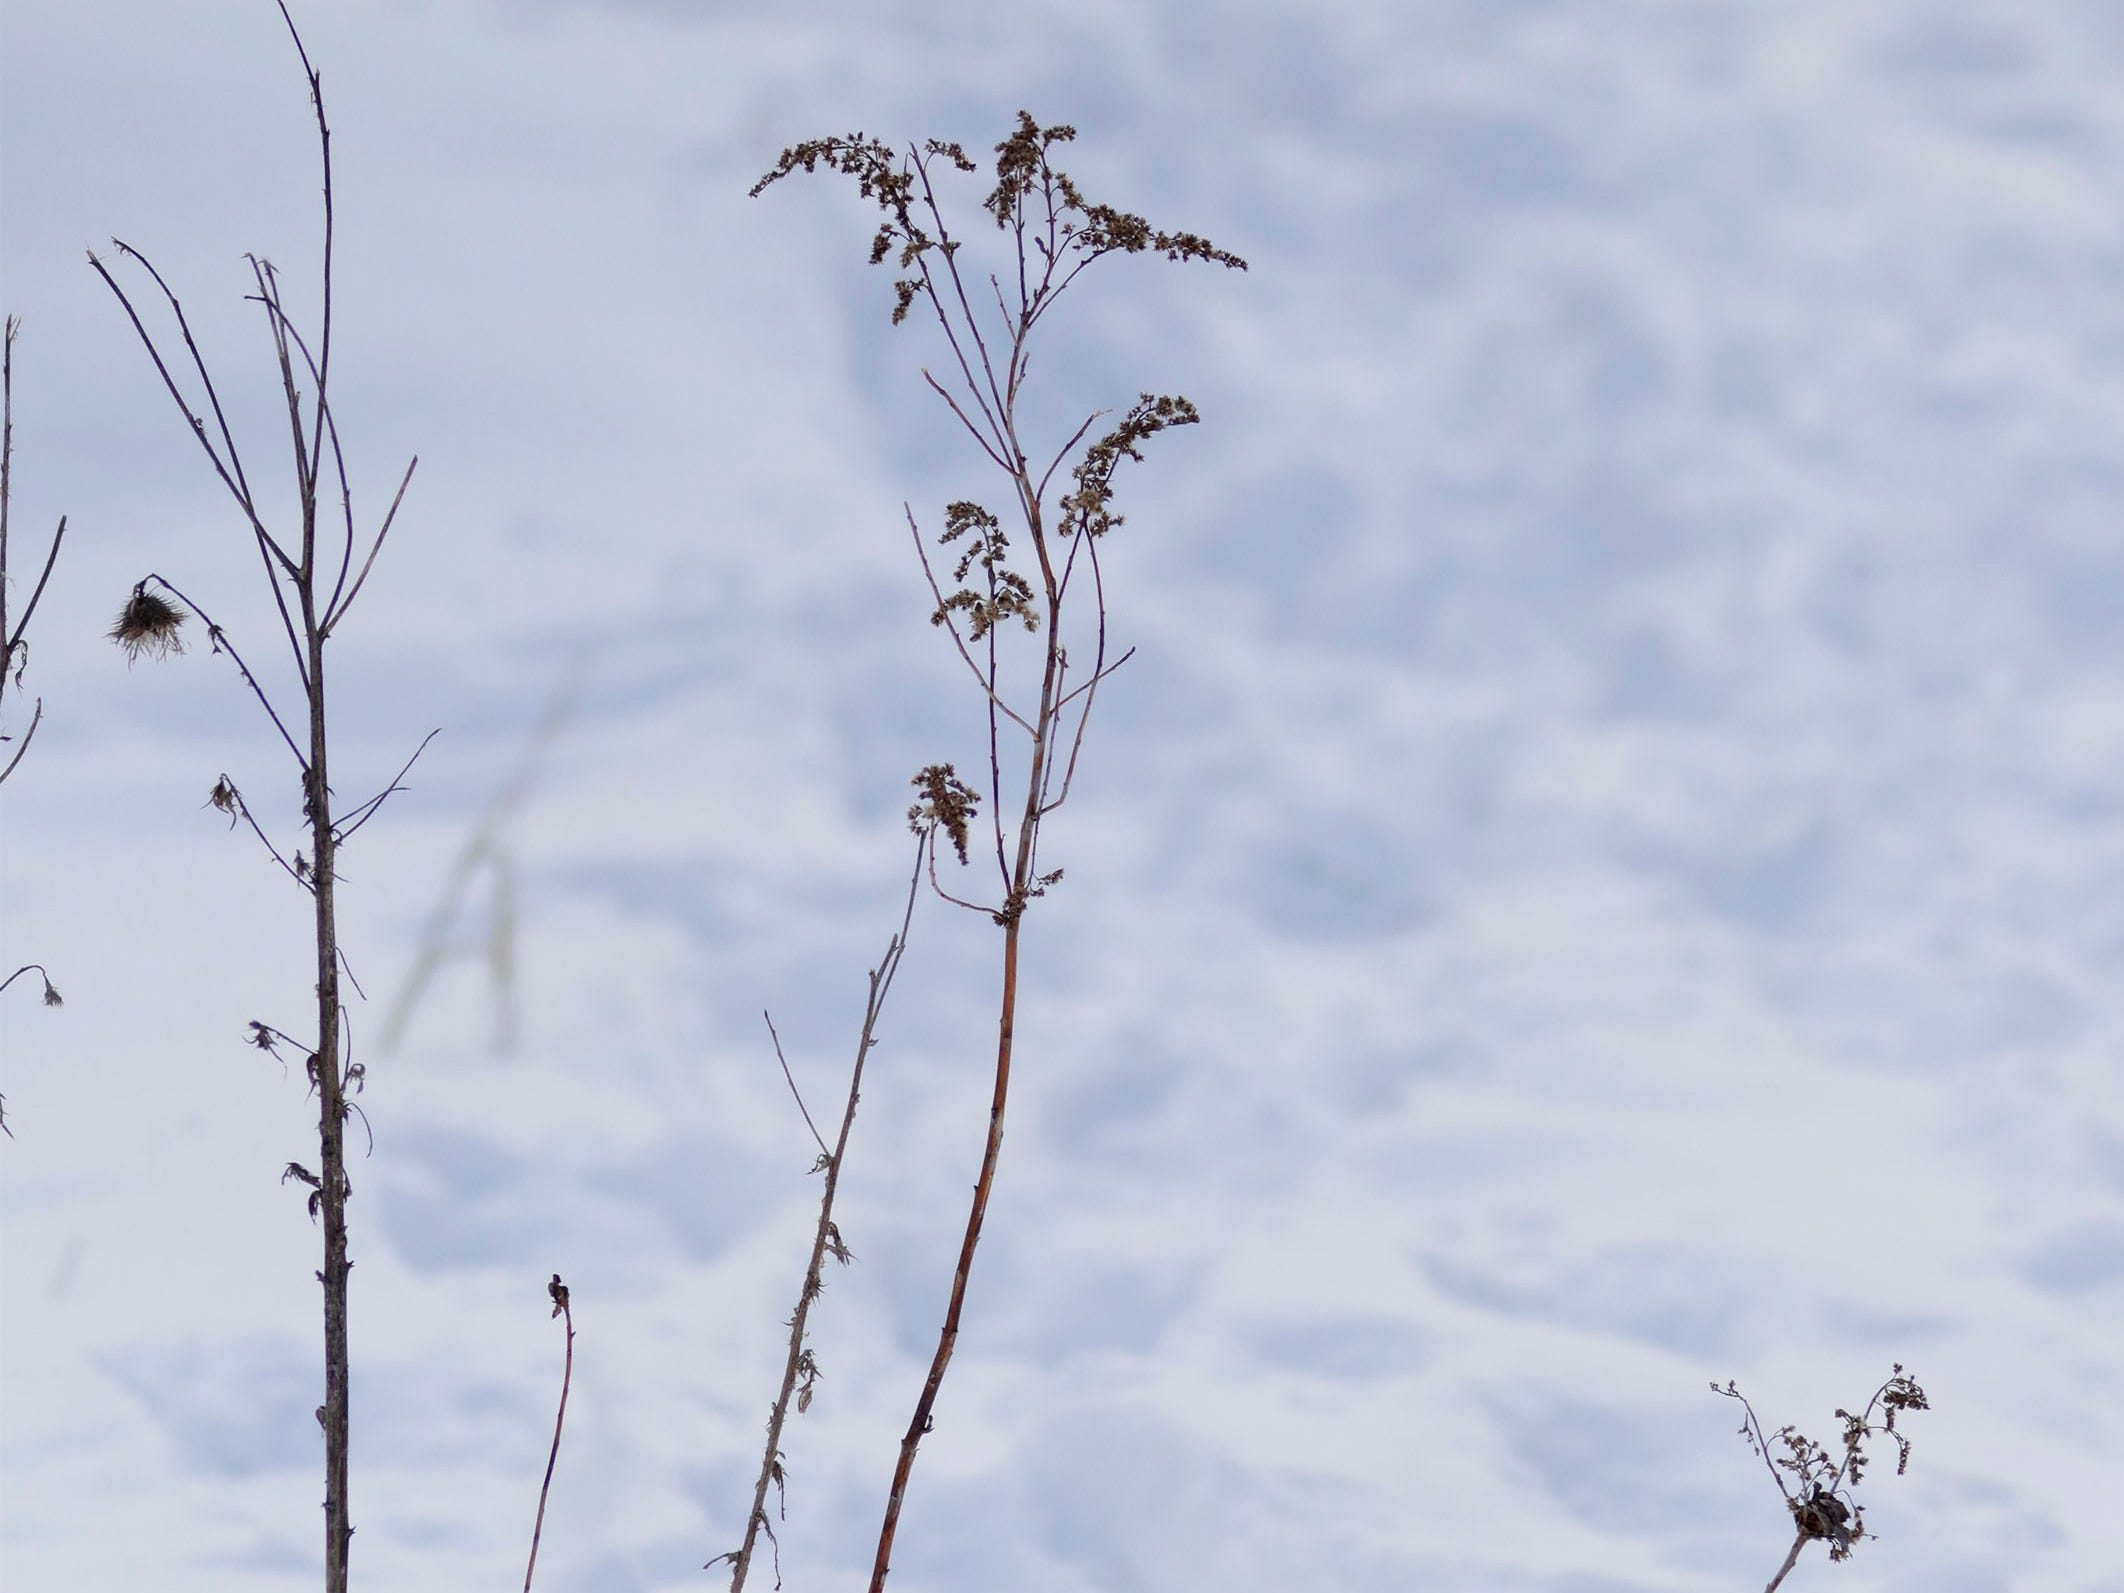 Dead plants silhouette against the white snow at Ellwood H. May Environmental Park, Tuesday, March 5, 2019, in Sheboygan, Wis.